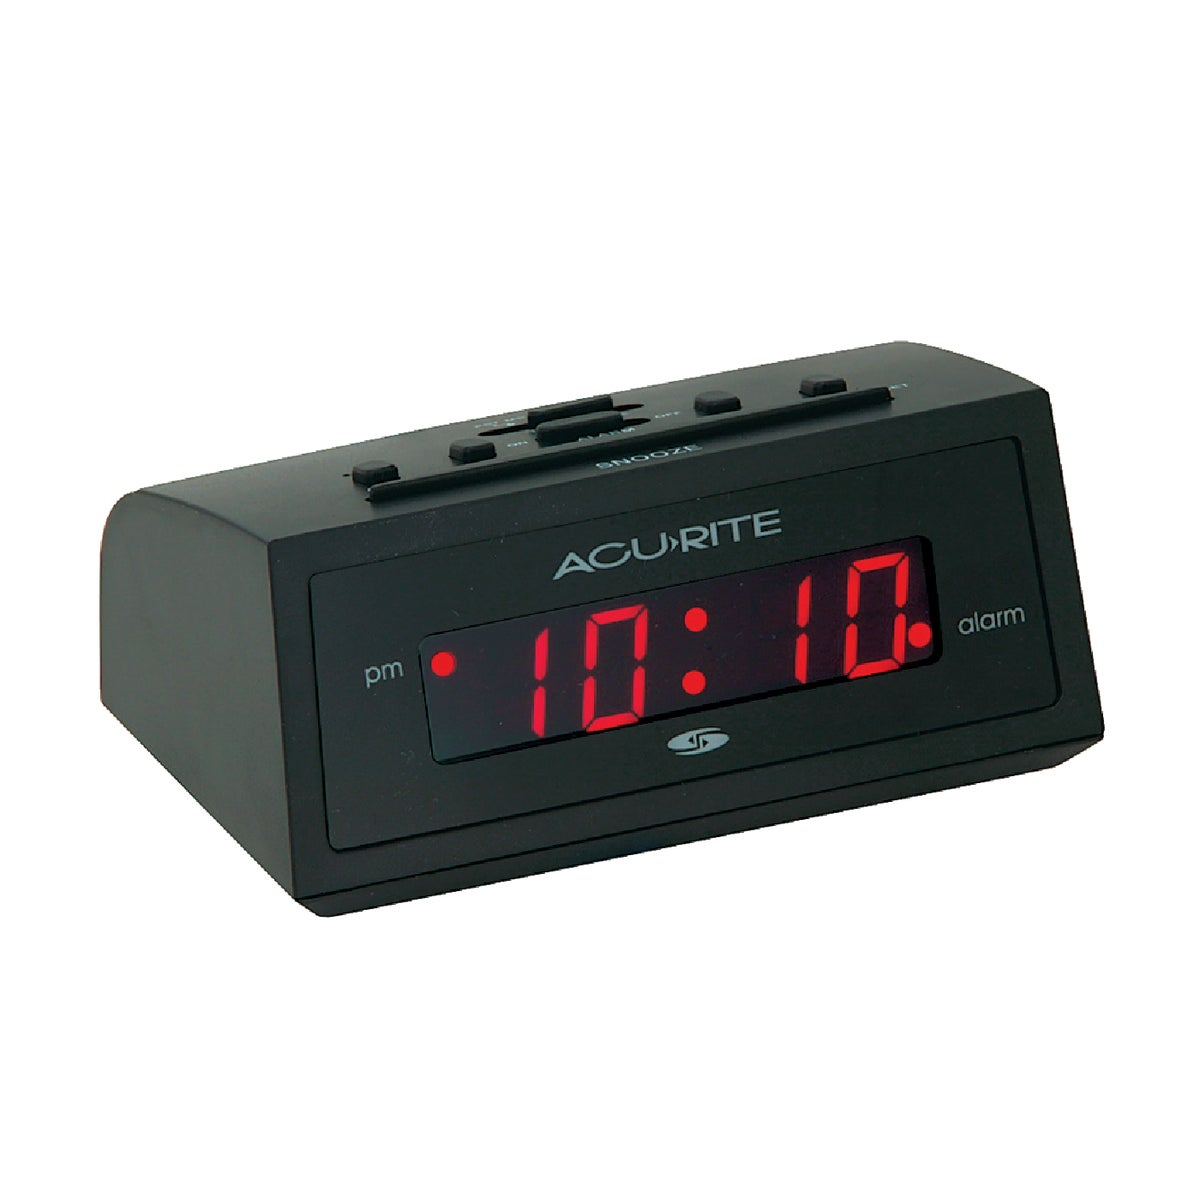 BLACK ALARM CLOCK - 13002 by Chaney Instrument Co